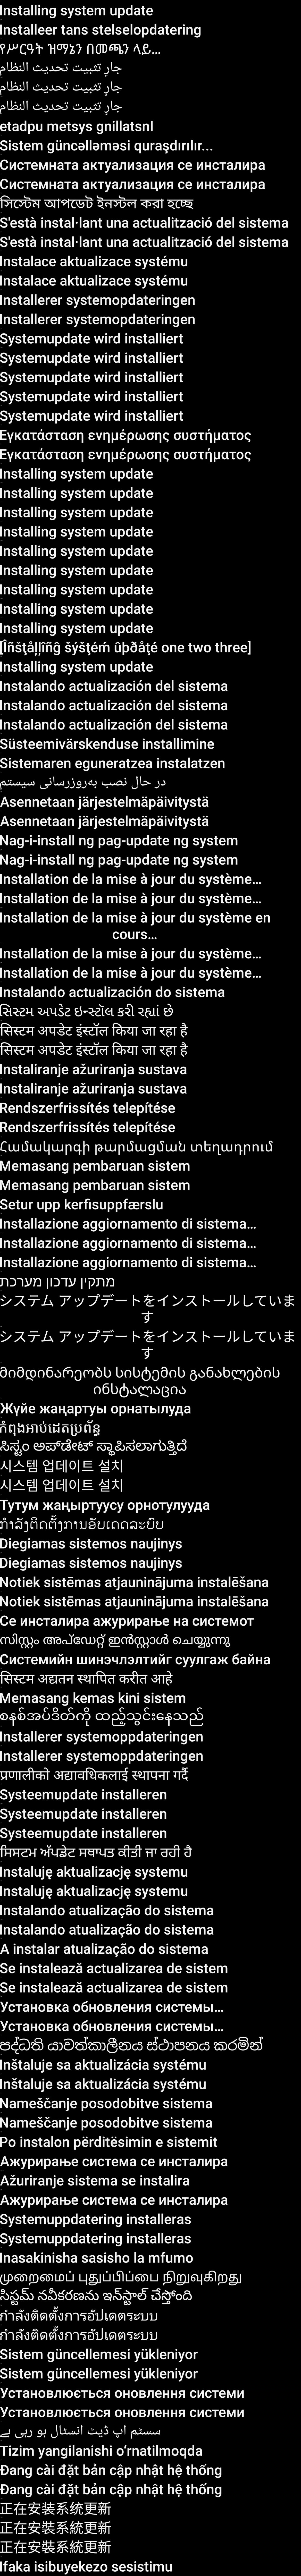 res-xxxhdpi/images/installing_text.png